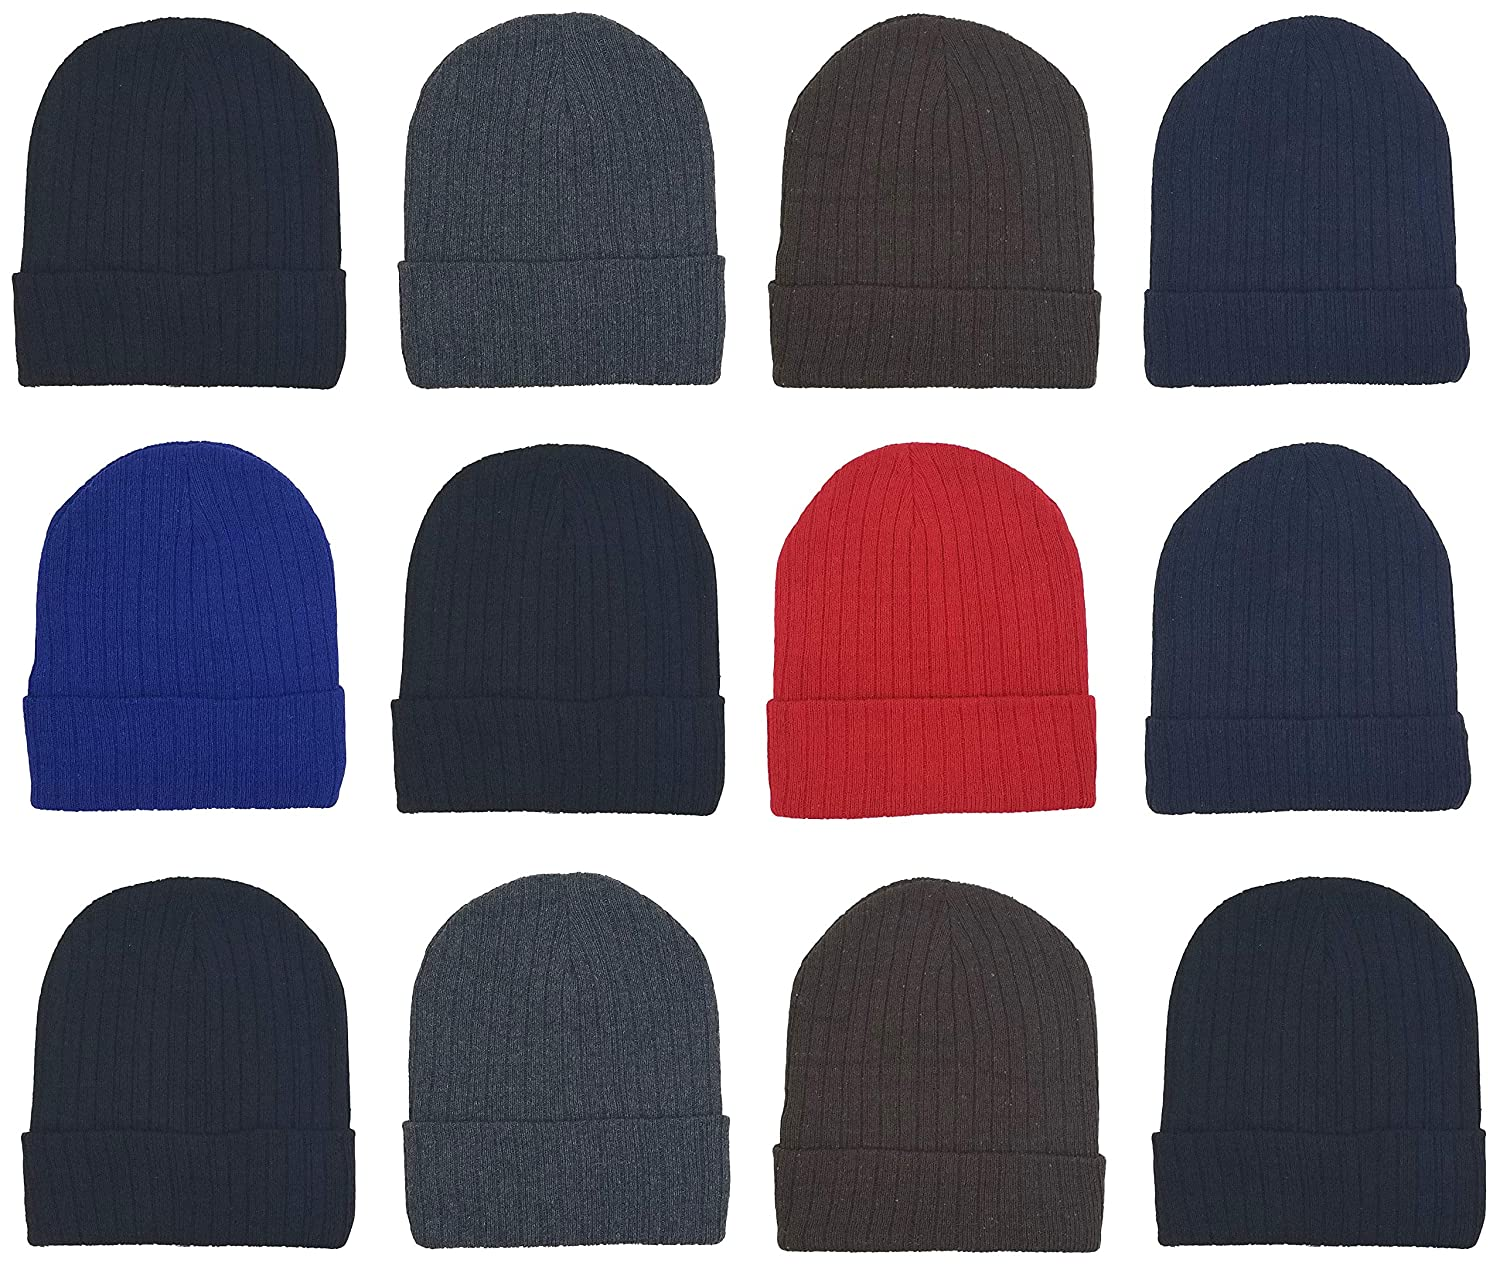 dde42d411 12 Pack Winter Beanie Hats for Men Women, Warm Cozy Knitted Cuffed Skull  Cap, Wholesale